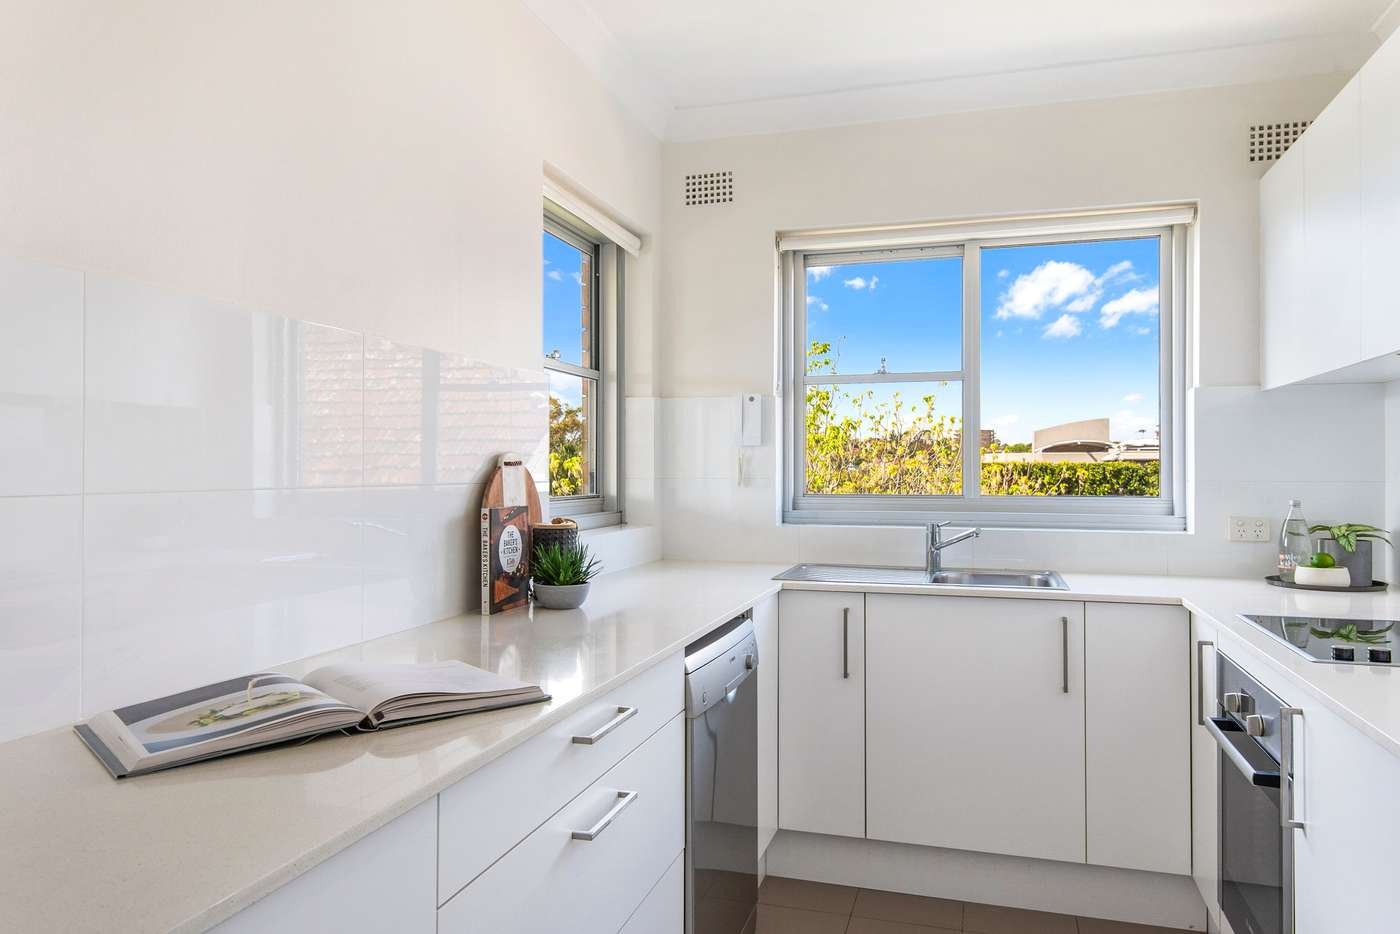 Fifth view of Homely apartment listing, 5/76 Muston Street, Mosman NSW 2088